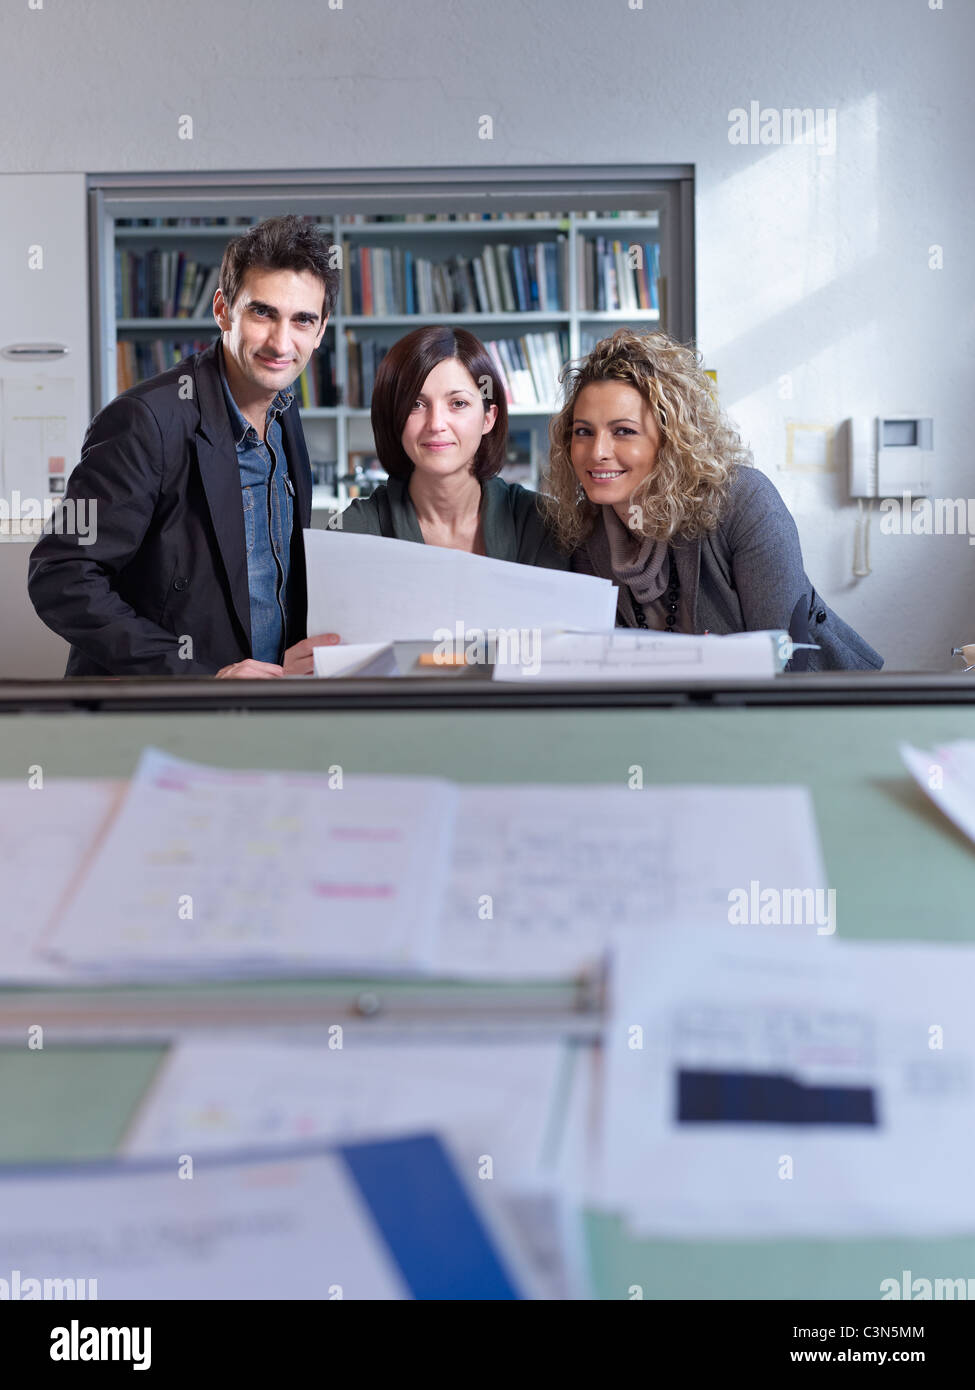 The colleagues working in office - Stock Image